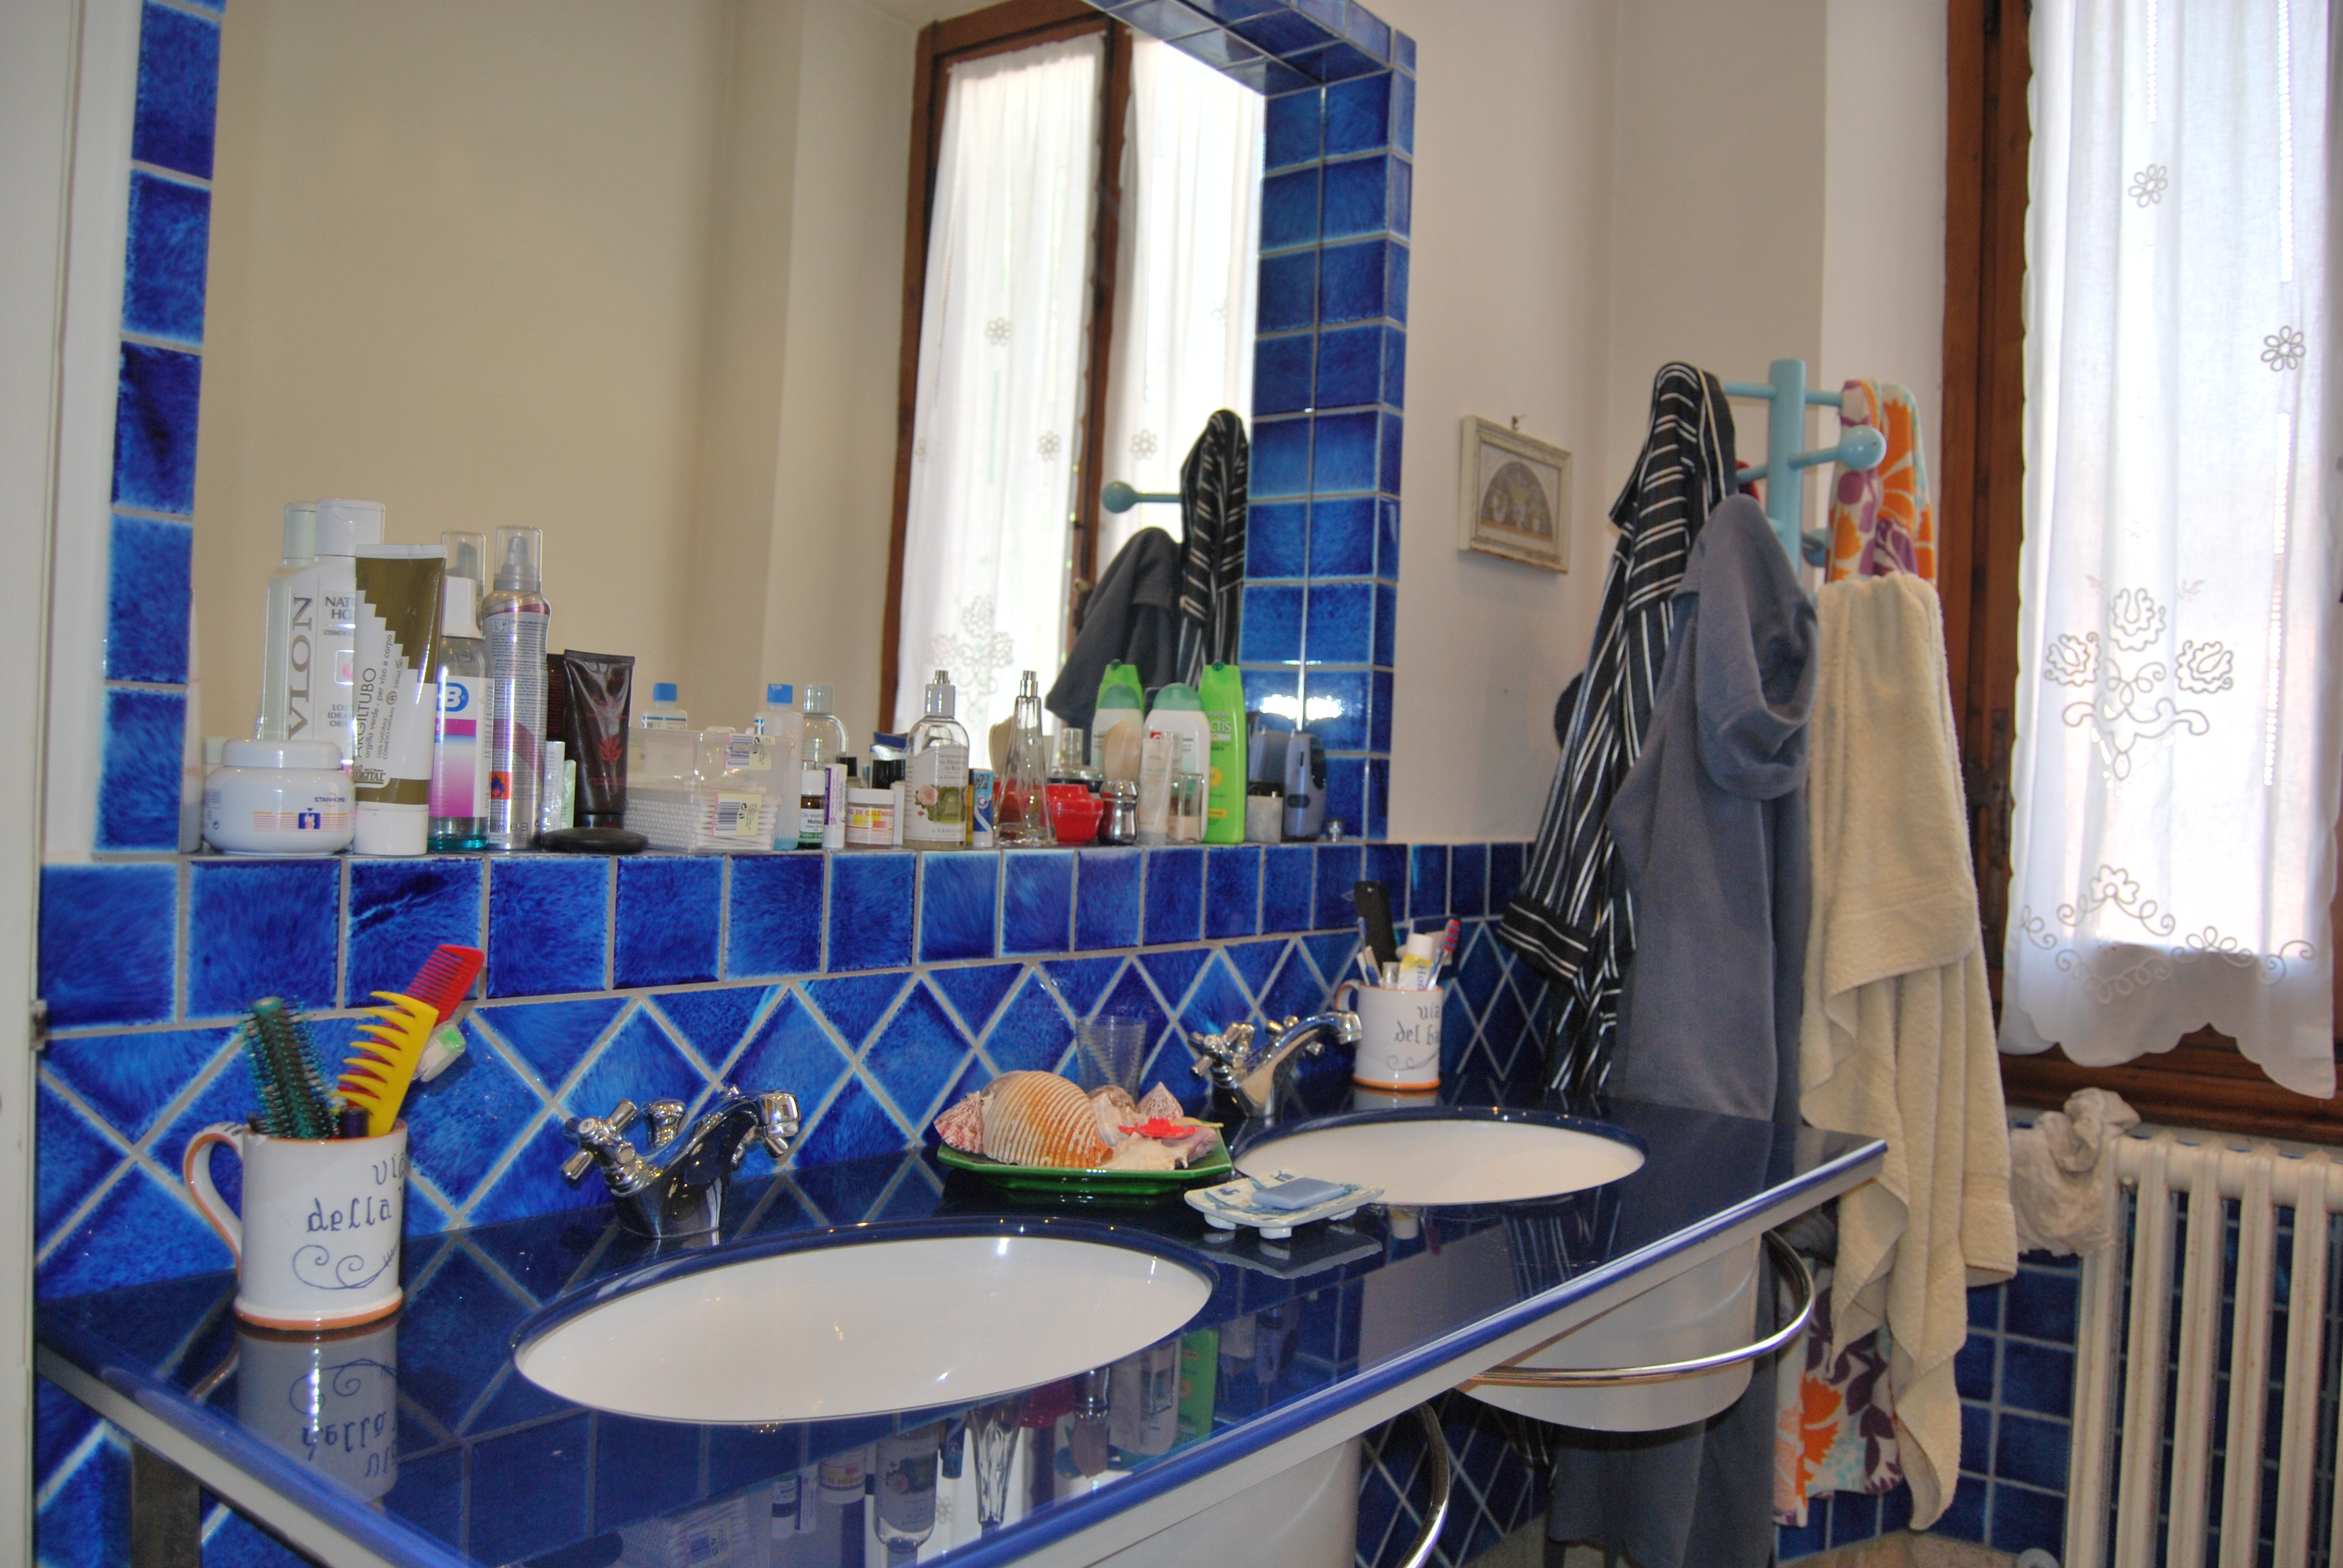 Gallery firenze bed and breakfast le ortensie - Bagno in spagnolo ...